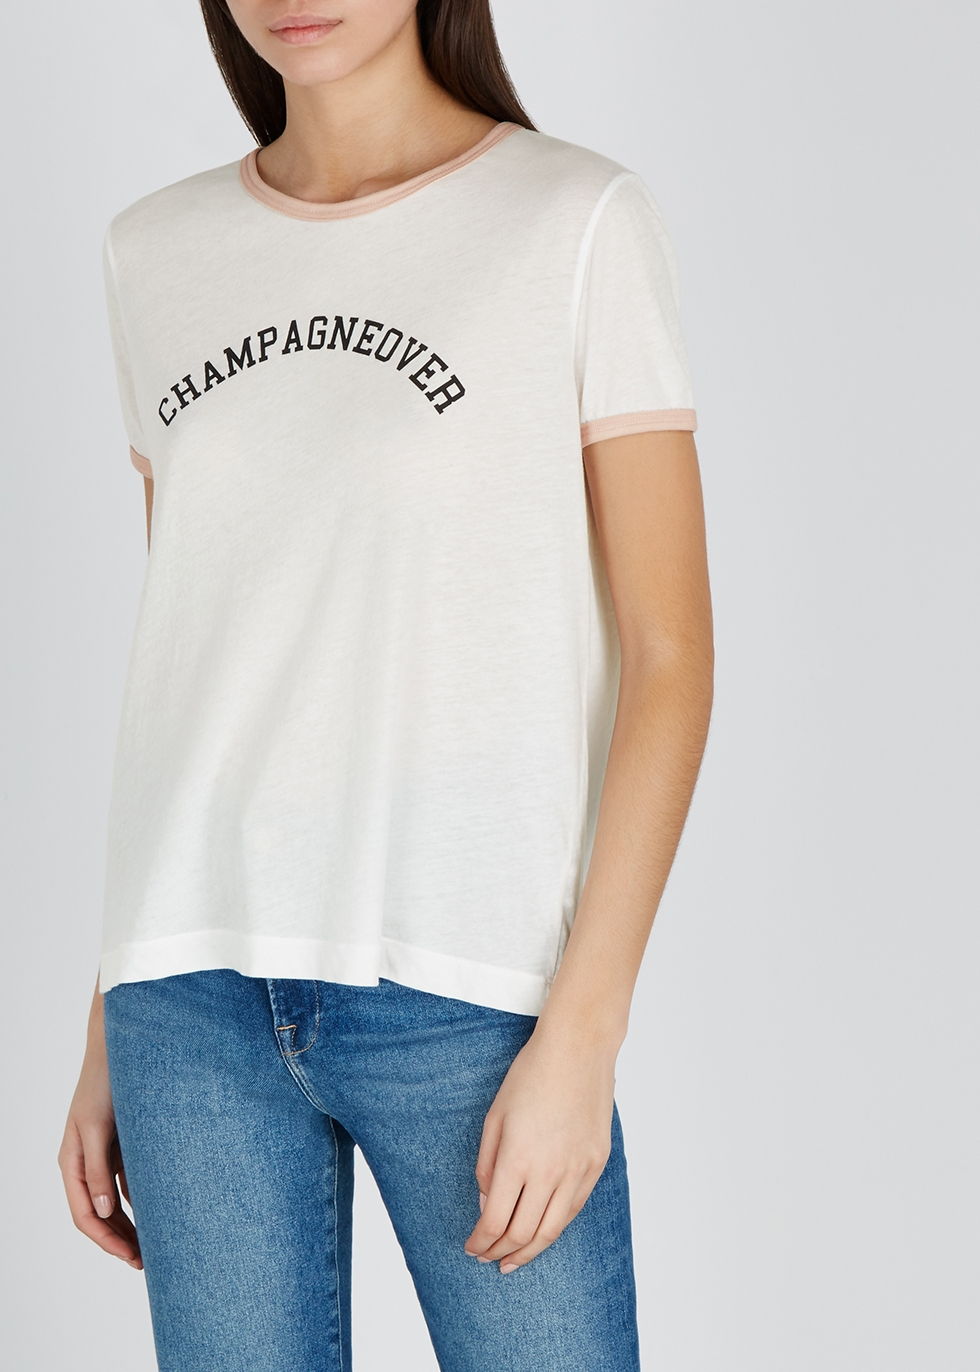 Champagne Johnny Ringer jersey T-shirt - Wildfox